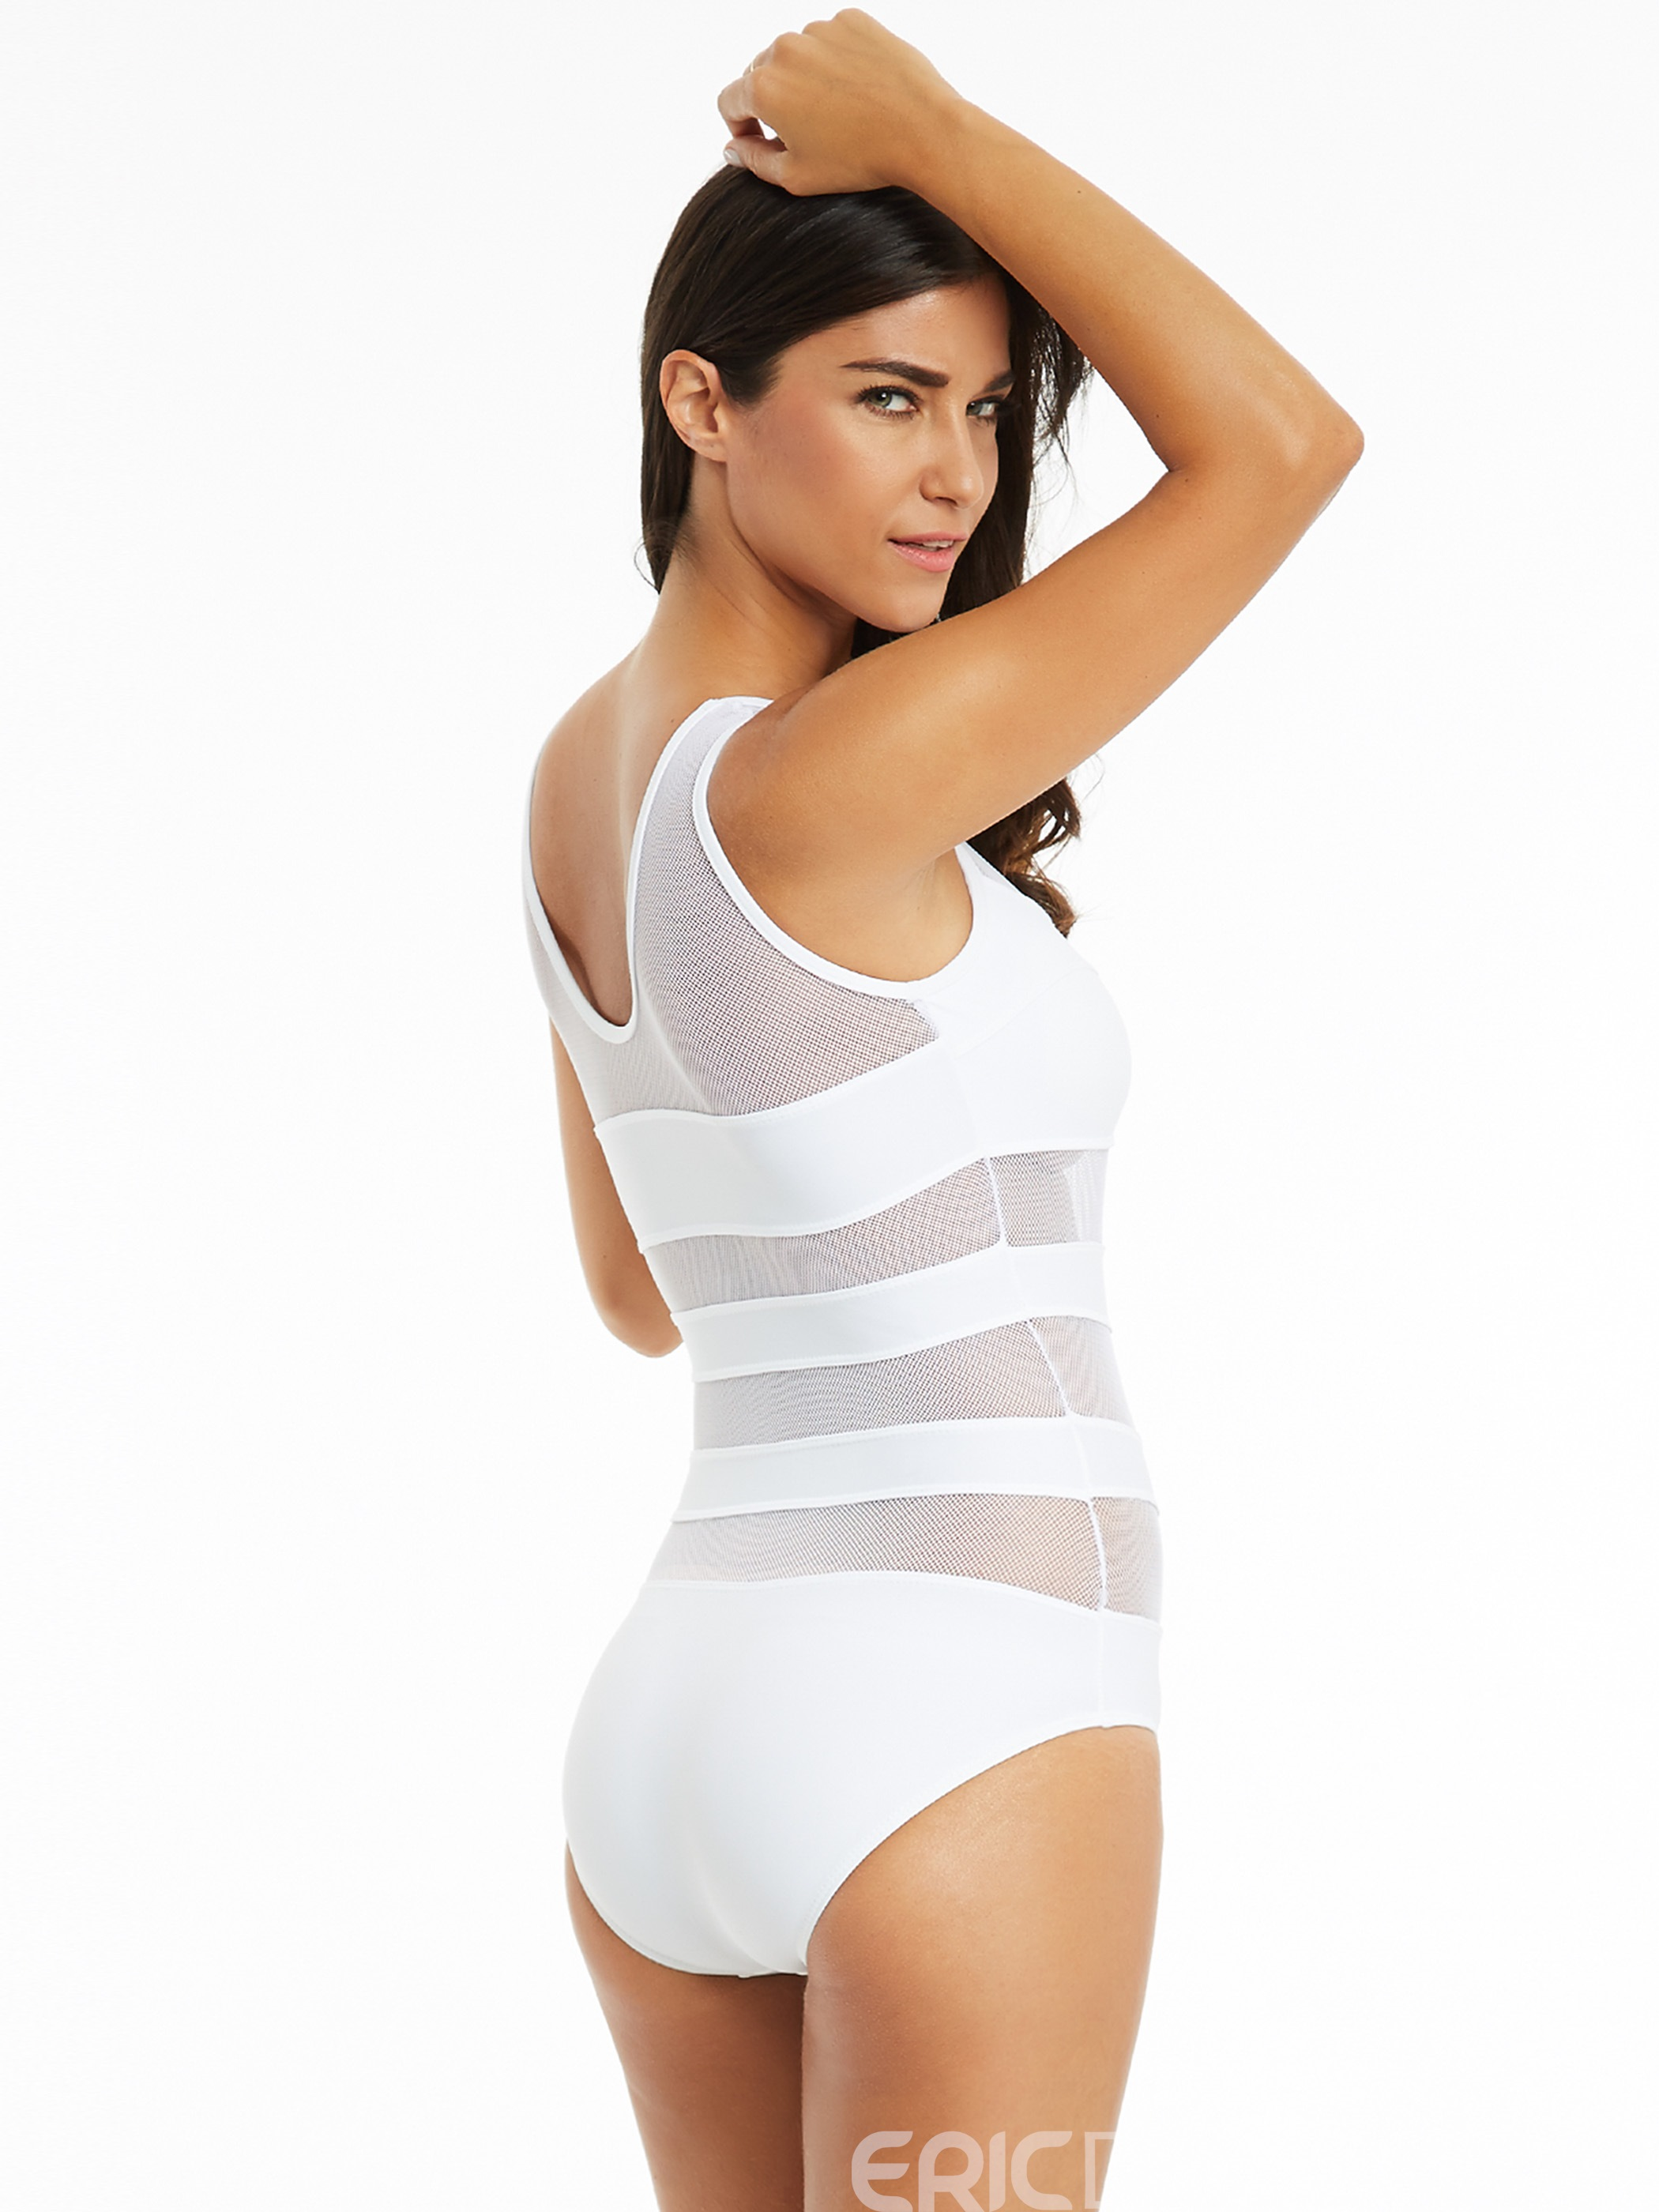 Ericdress Vogue See-Through One-Piece Swimsuit